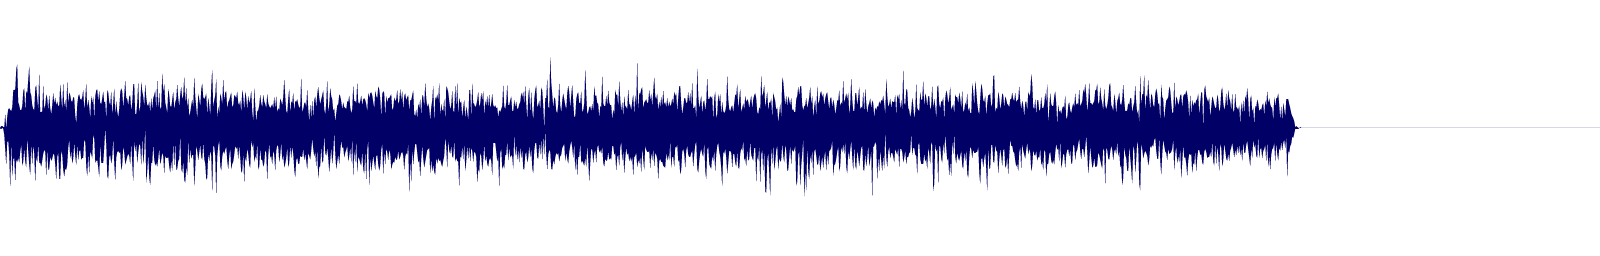 waveform of track #100035